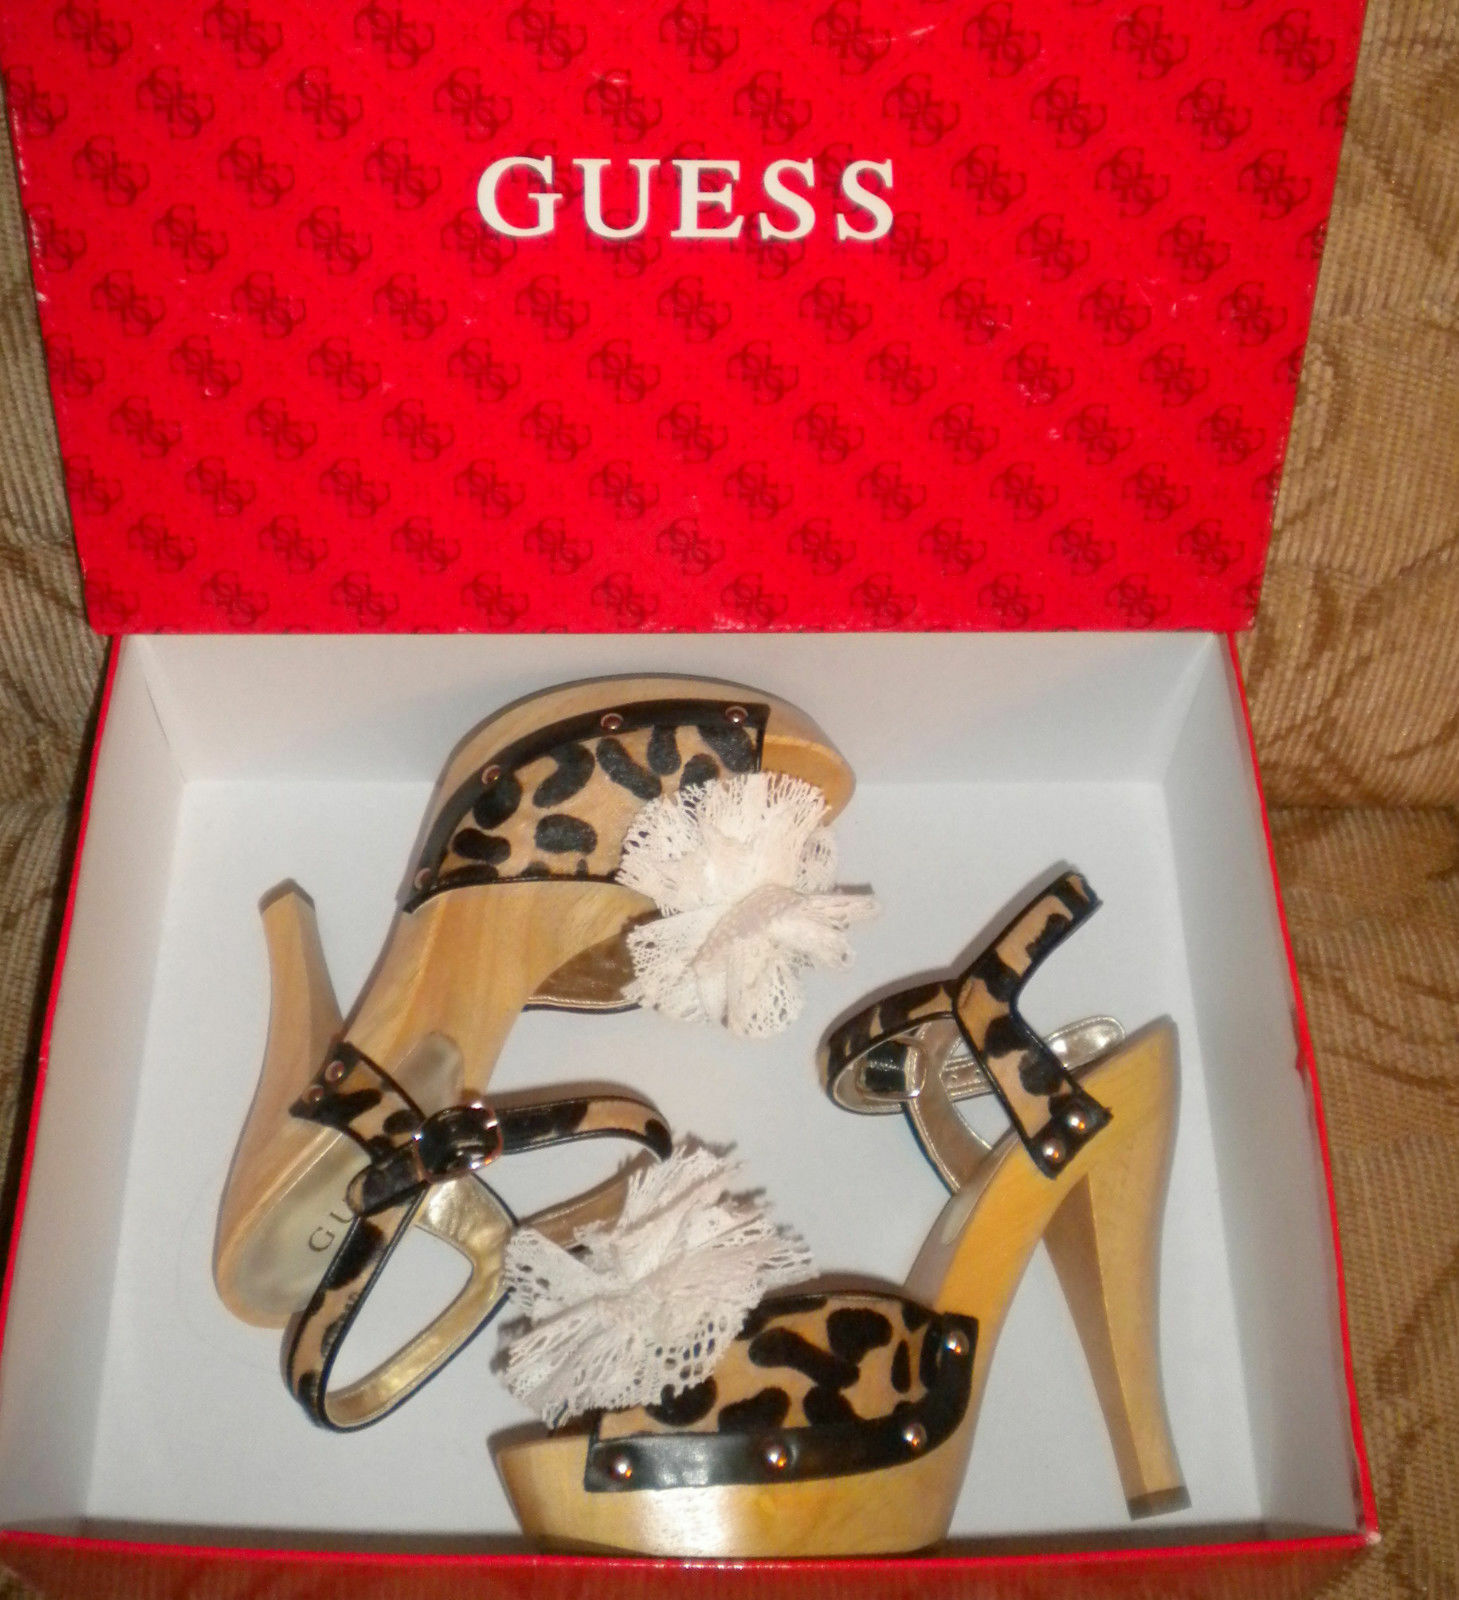 GUESS Women's Velare Platform LEATHER HAIRCALF HAIRCALF HAIRCALF ANIMAL PRINT SHOES Size 8.0 M 2cf43f